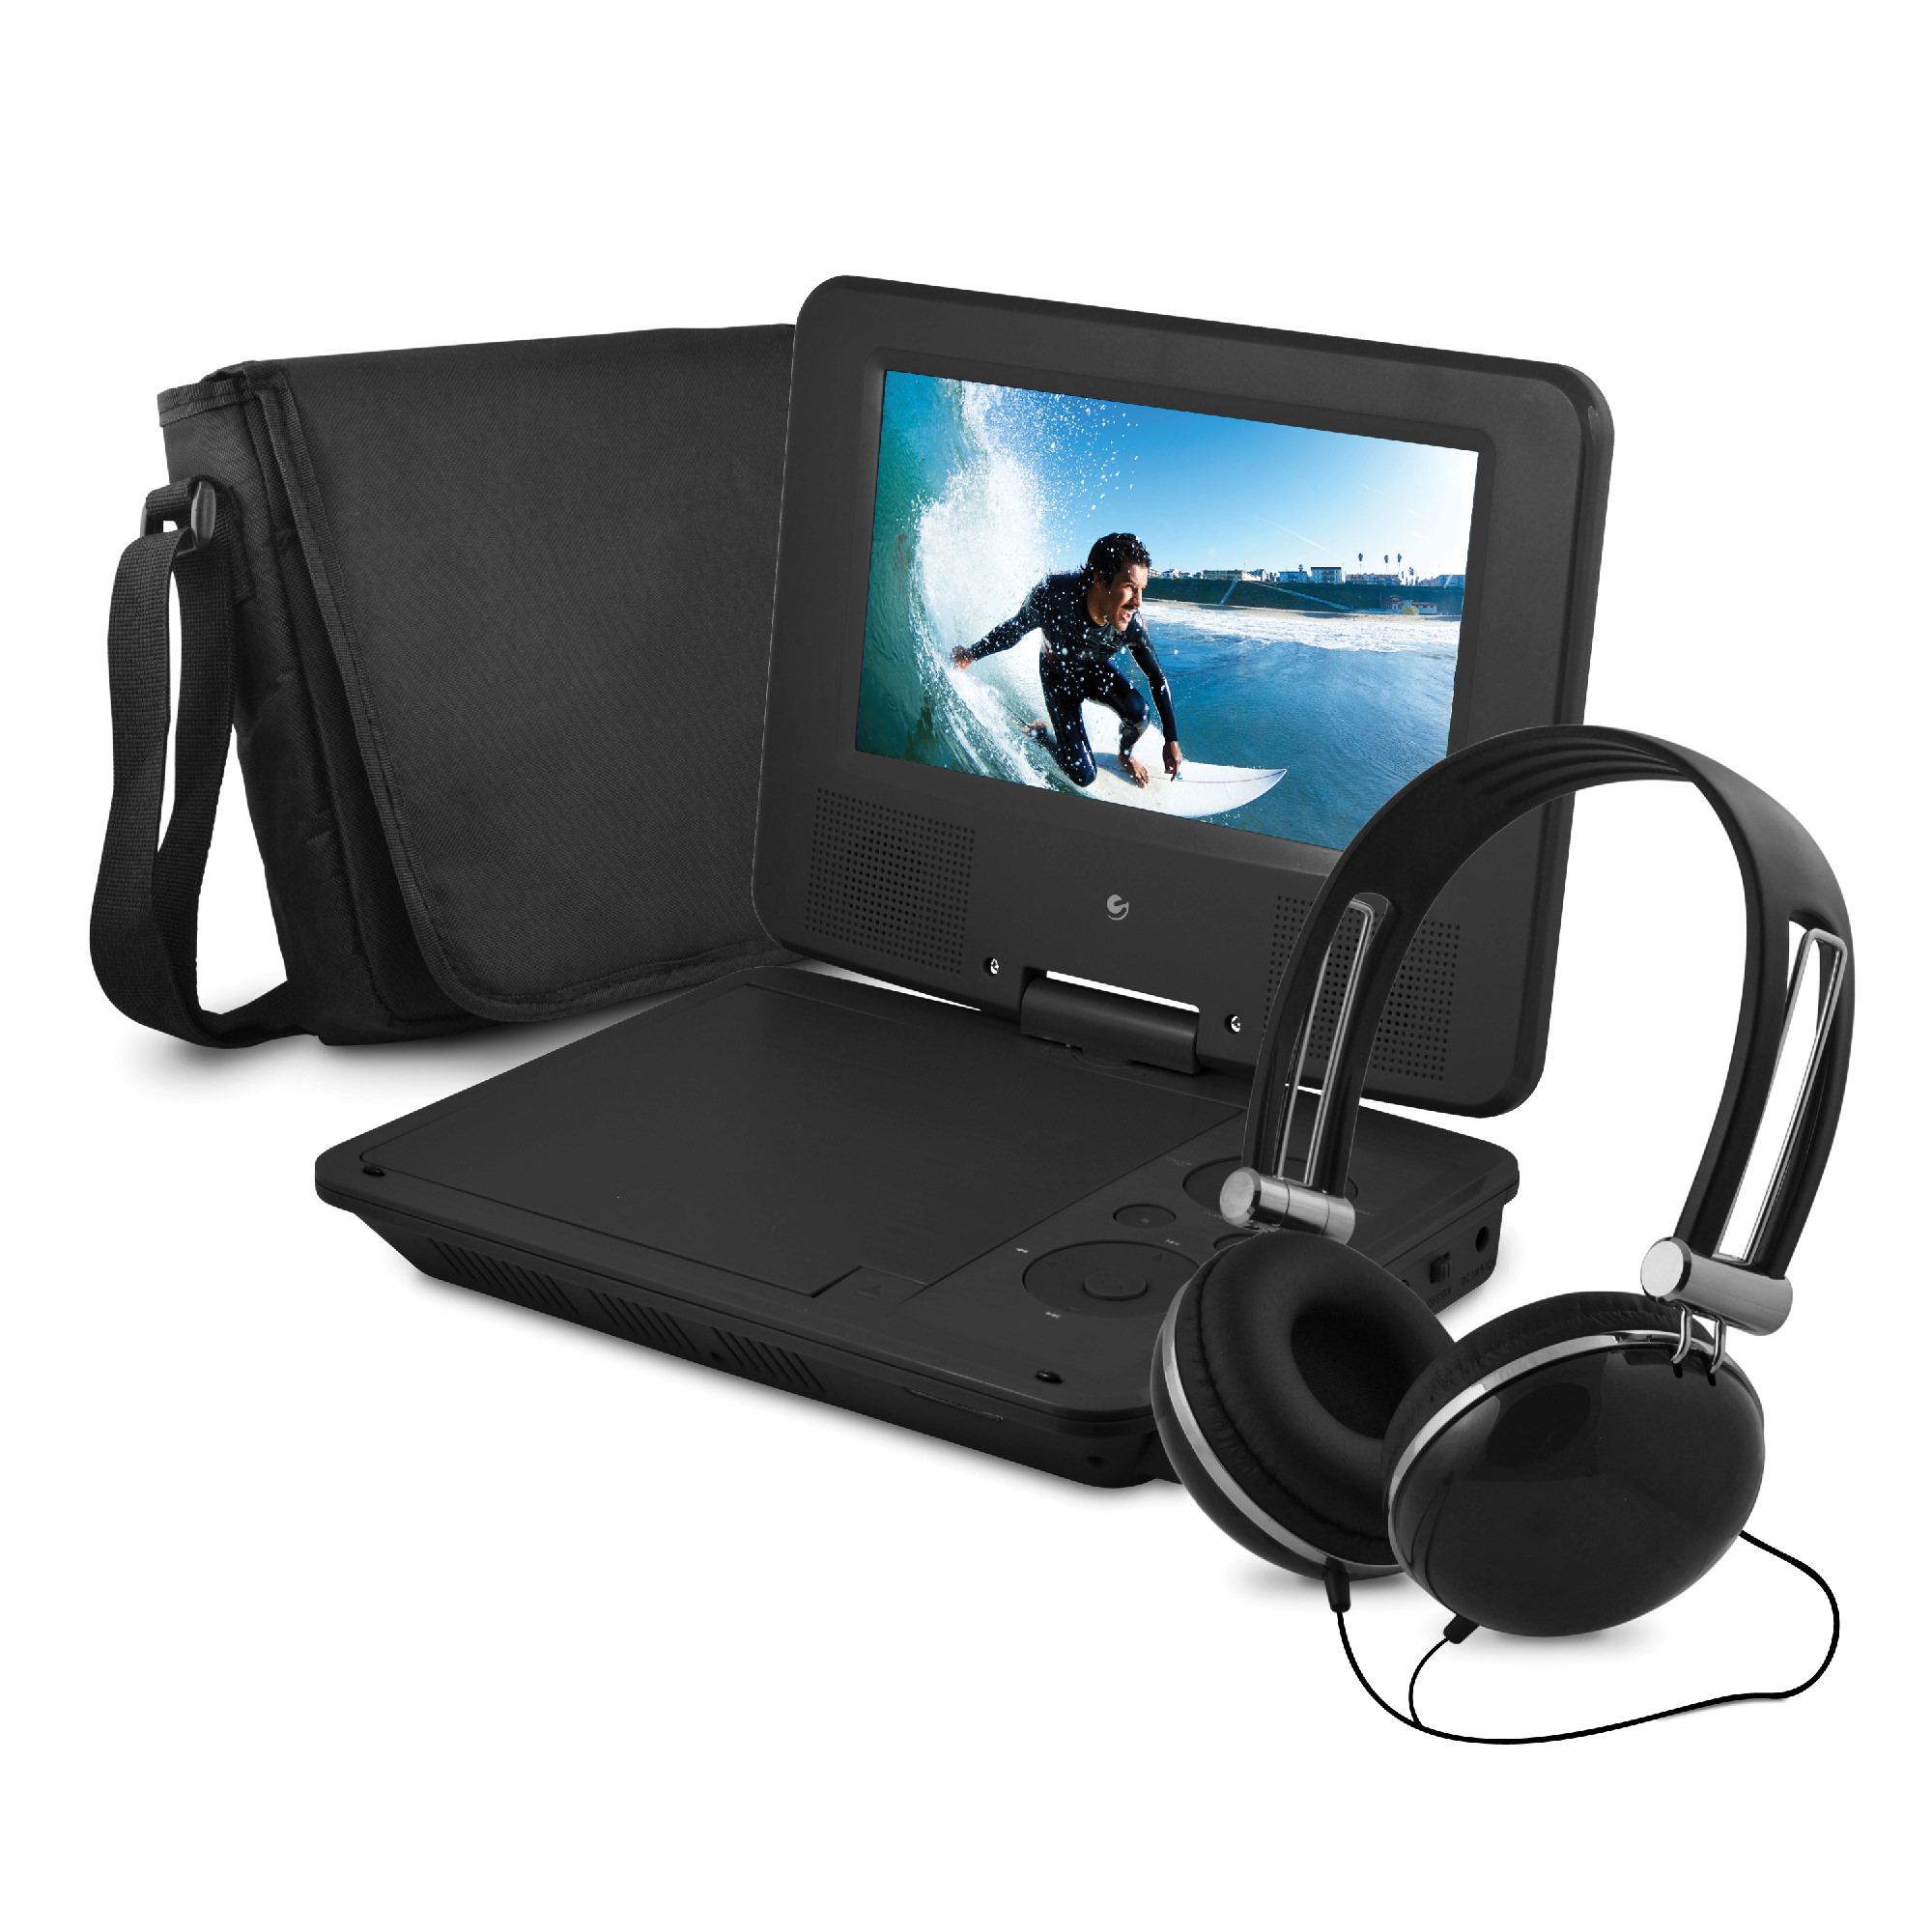 "Onn 9"" Portable Dvd Player With Matching Headphones And Bag"